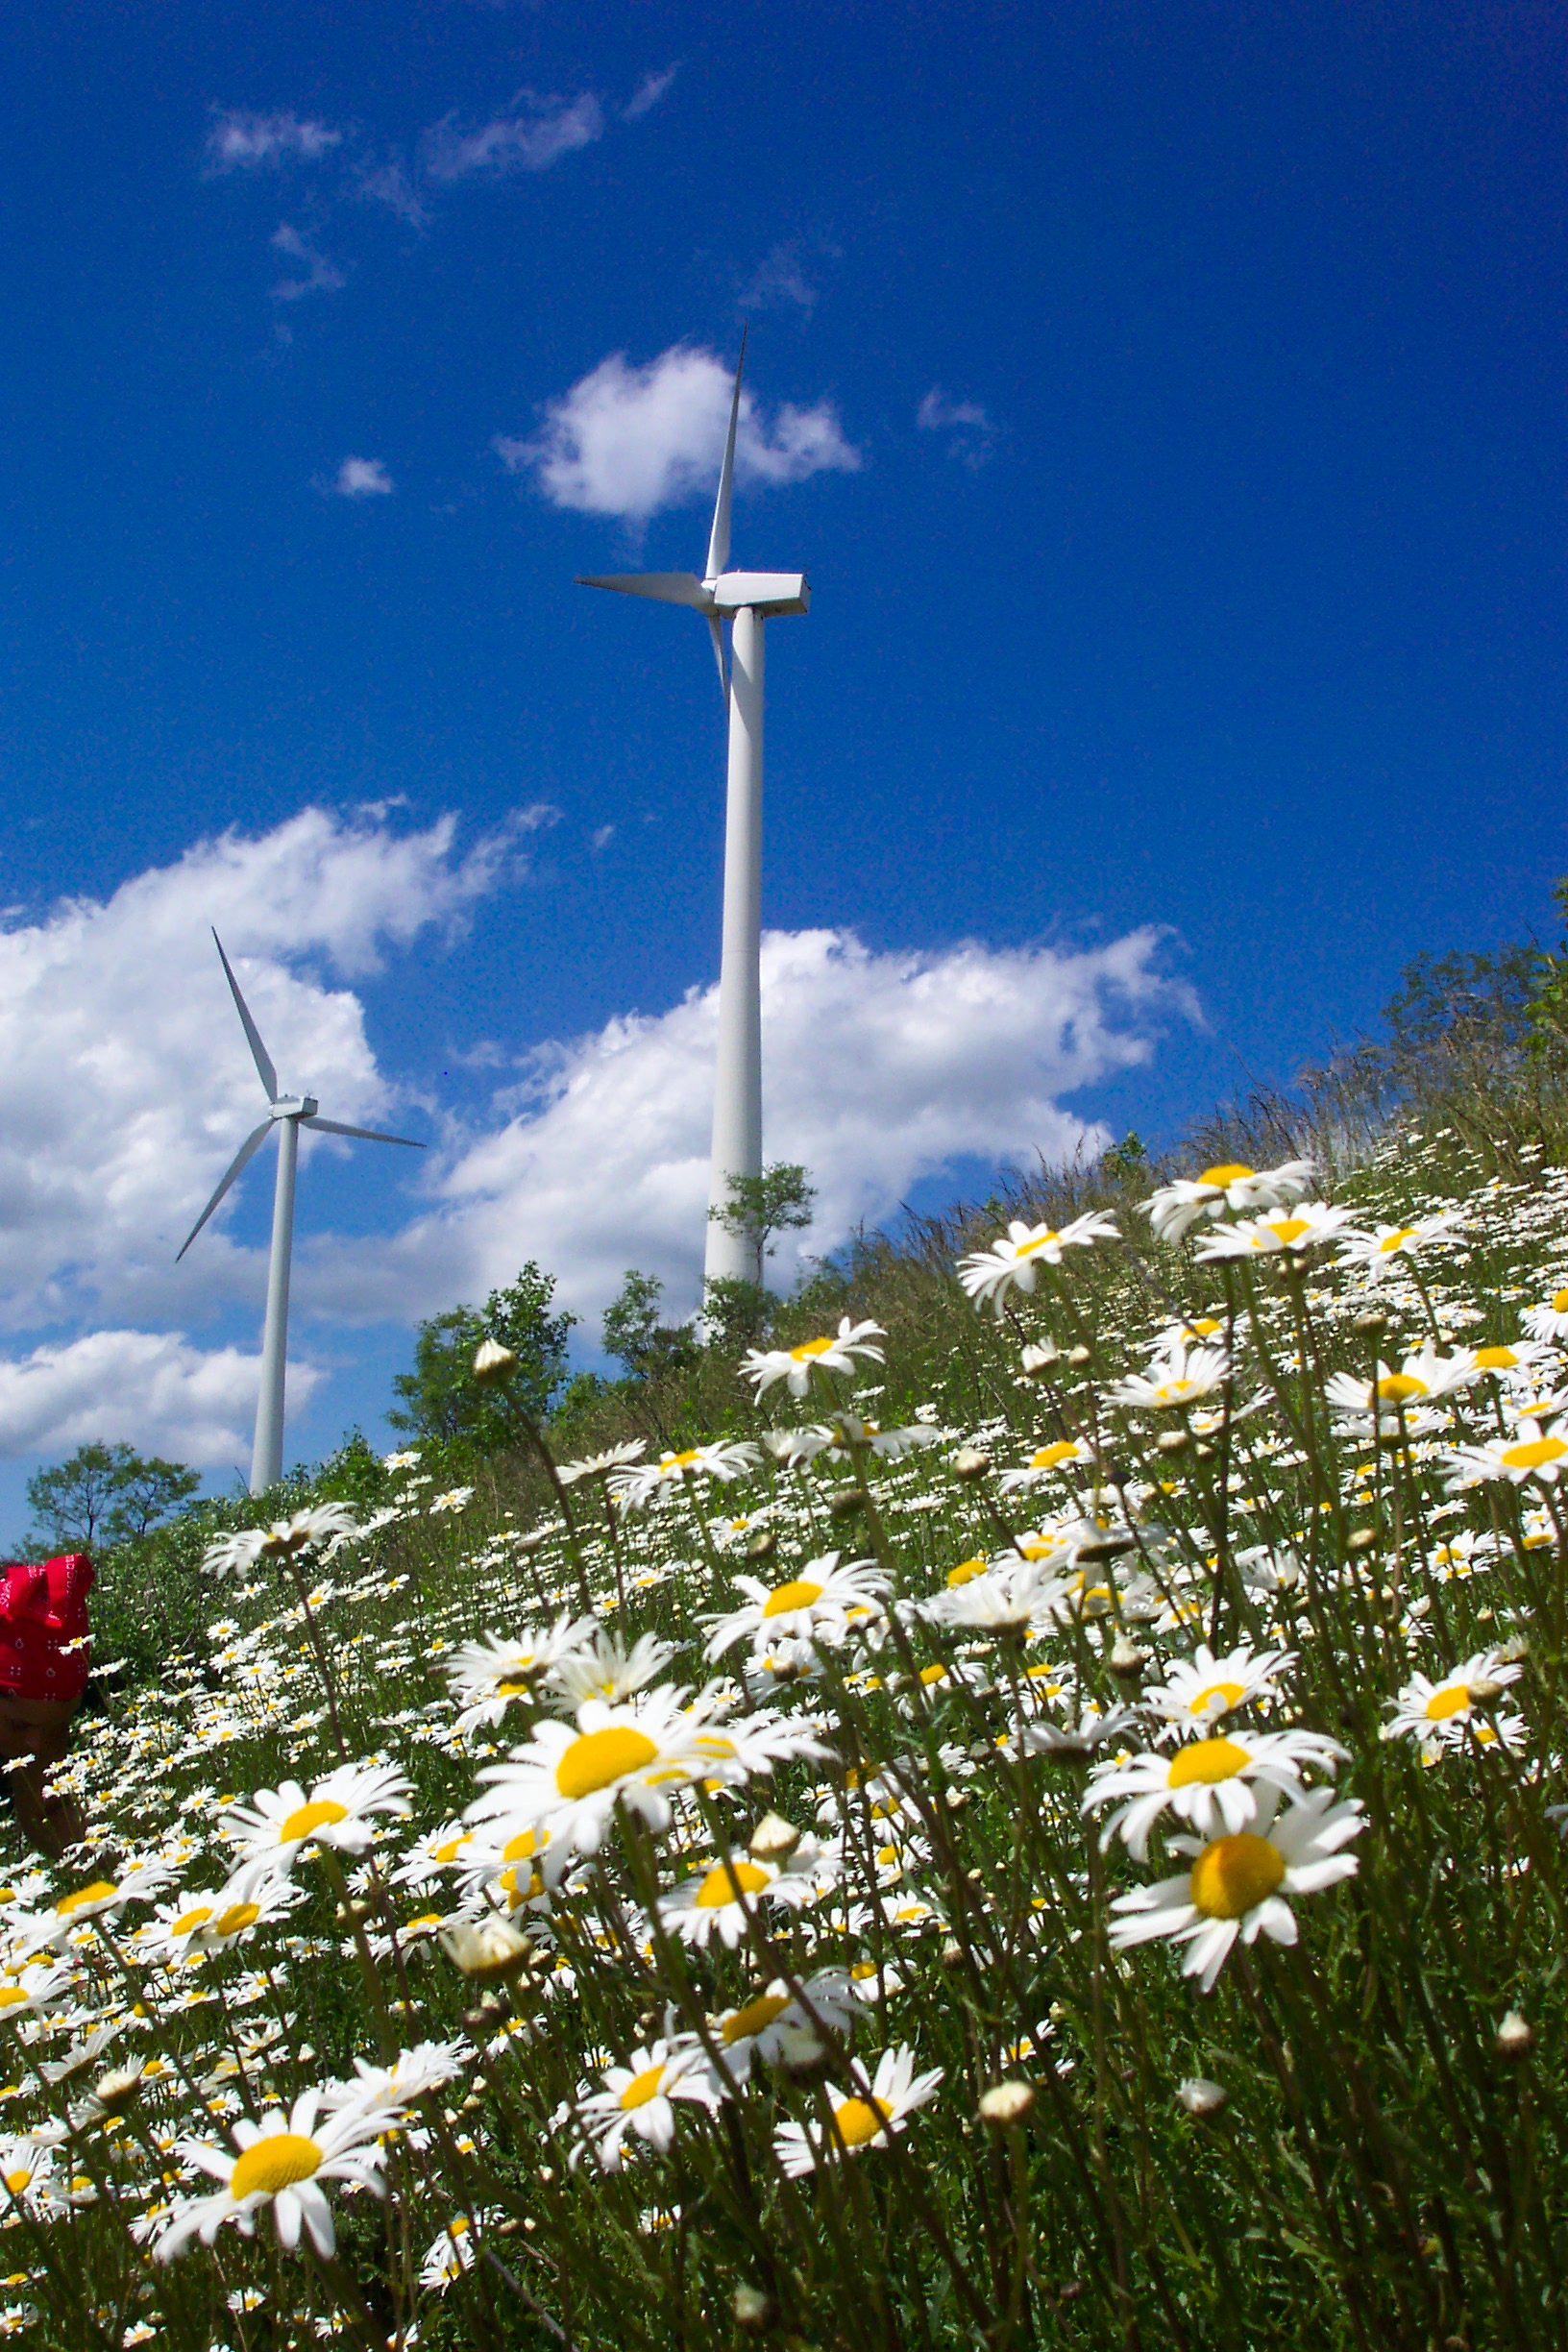 Wind turbines and daisies